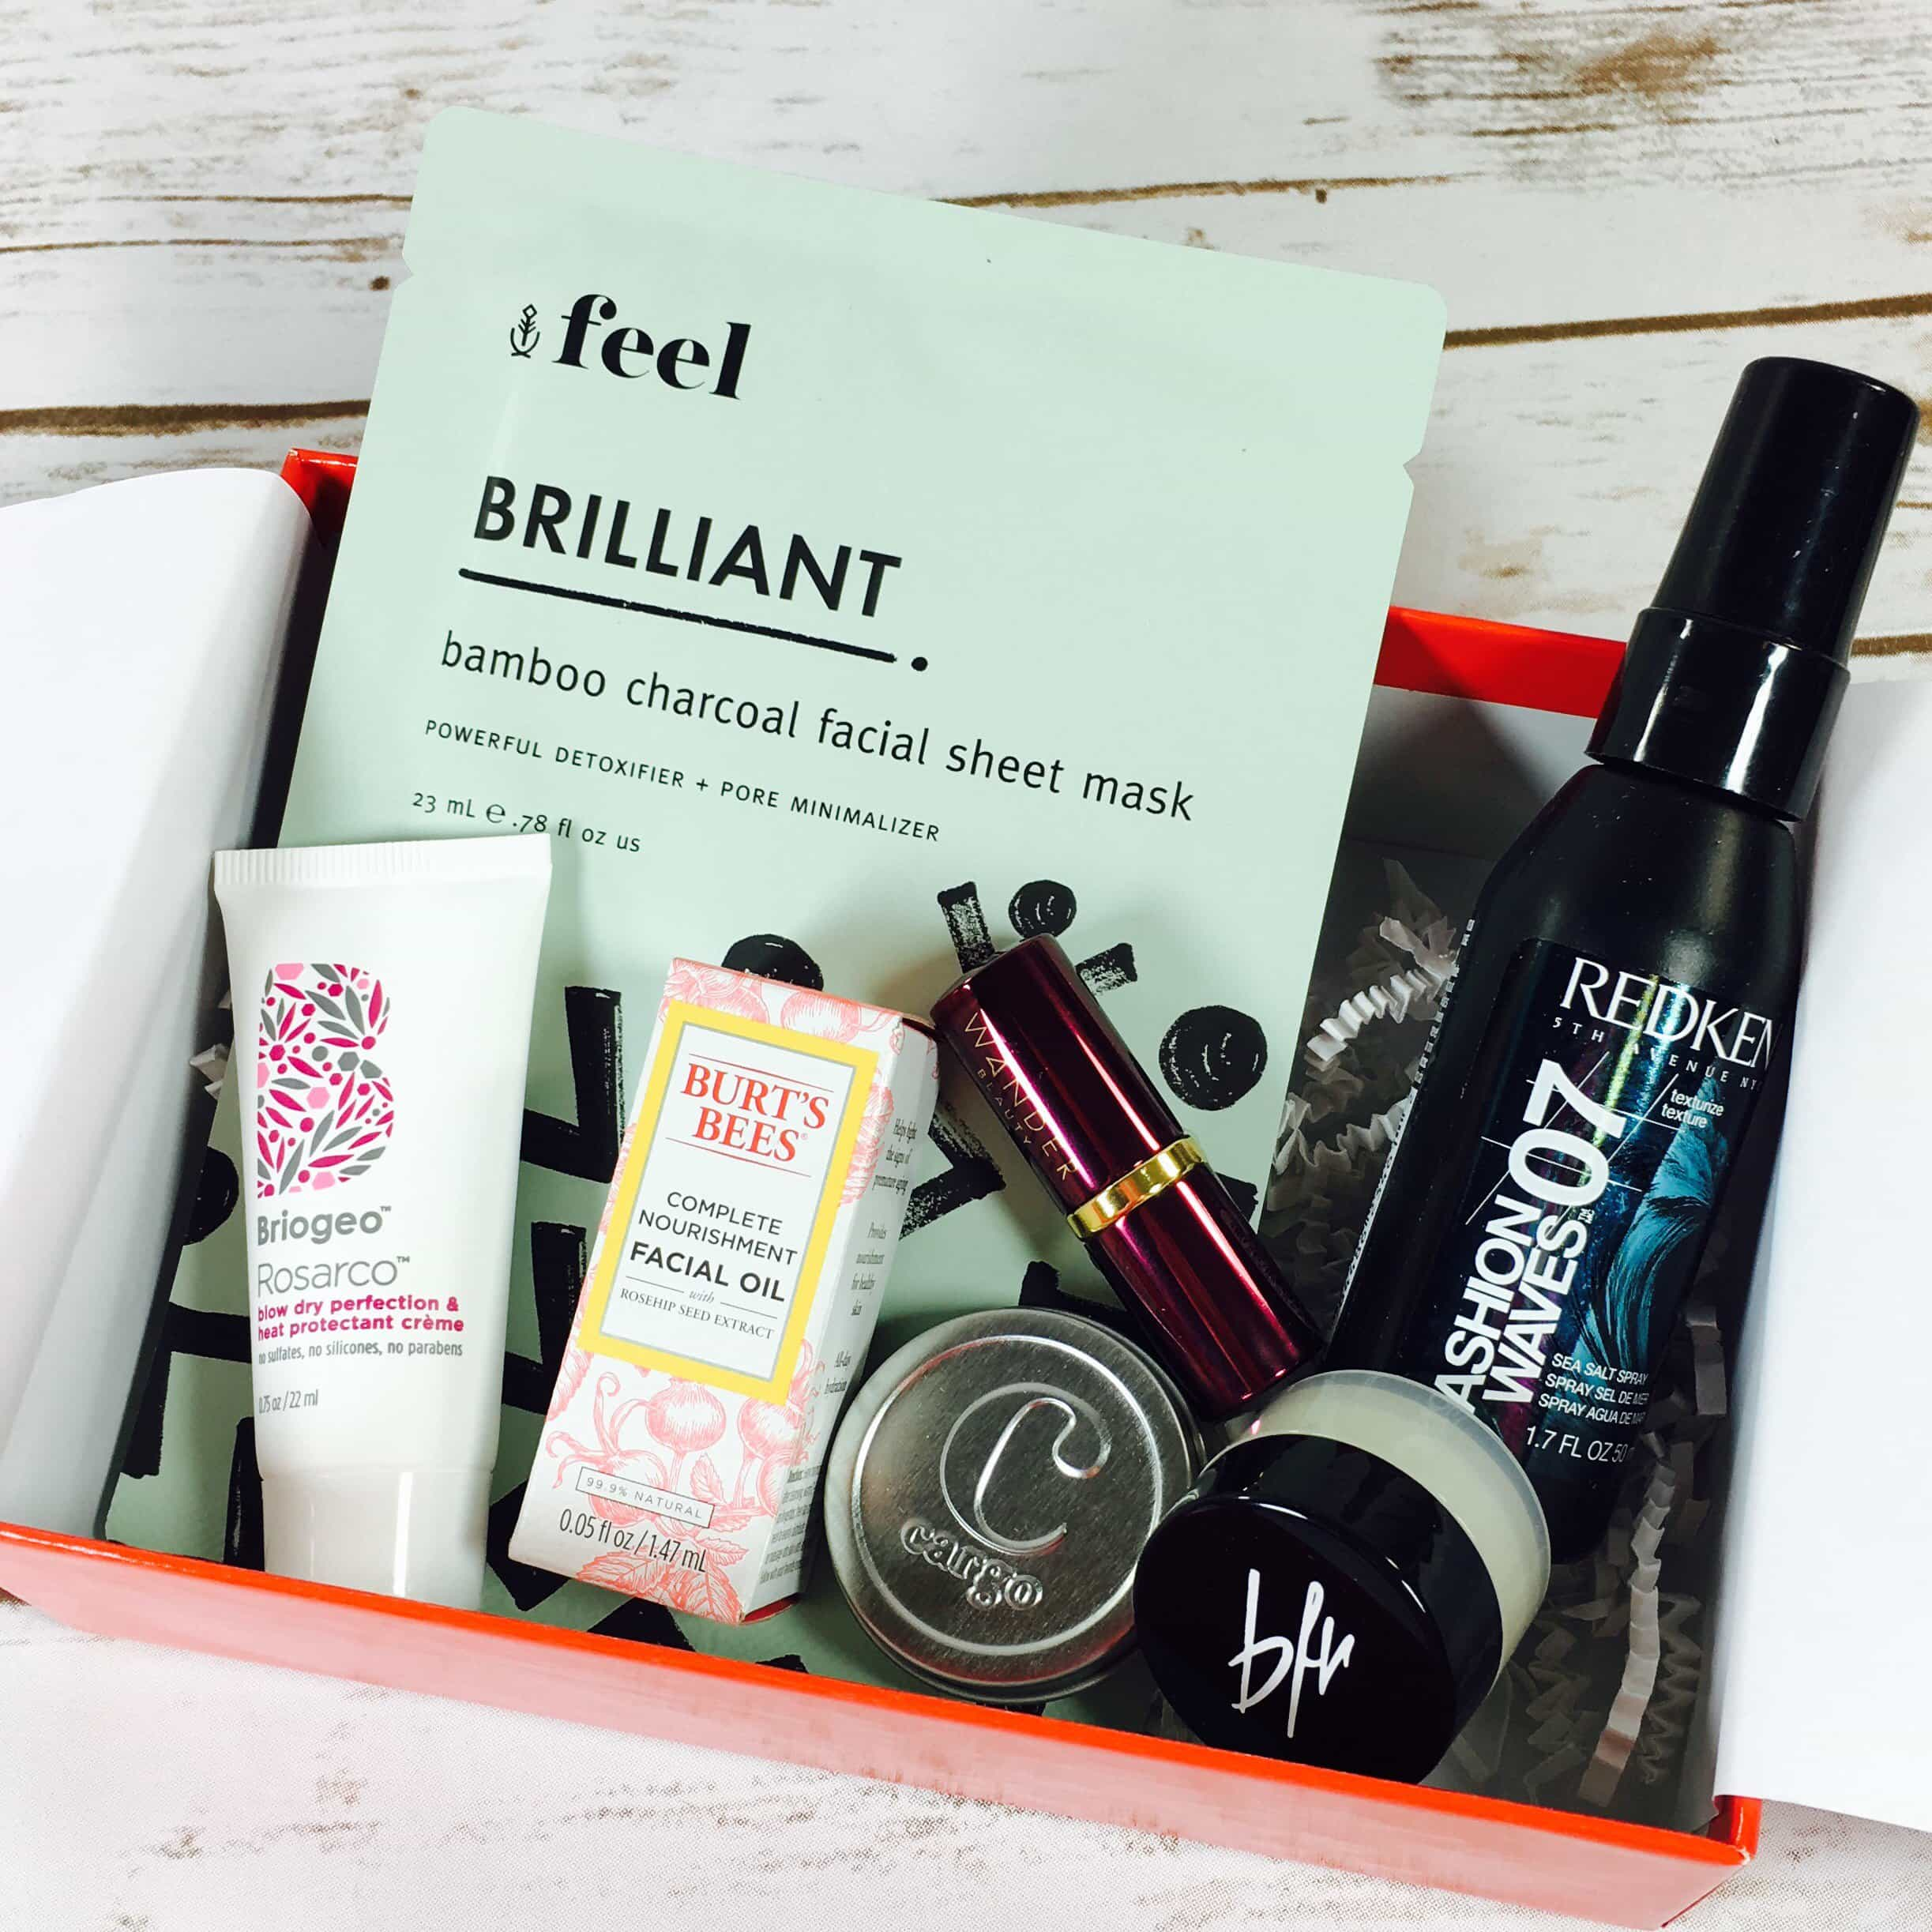 Allure Beauty Box July 2017 Subscription Box Review & Coupon